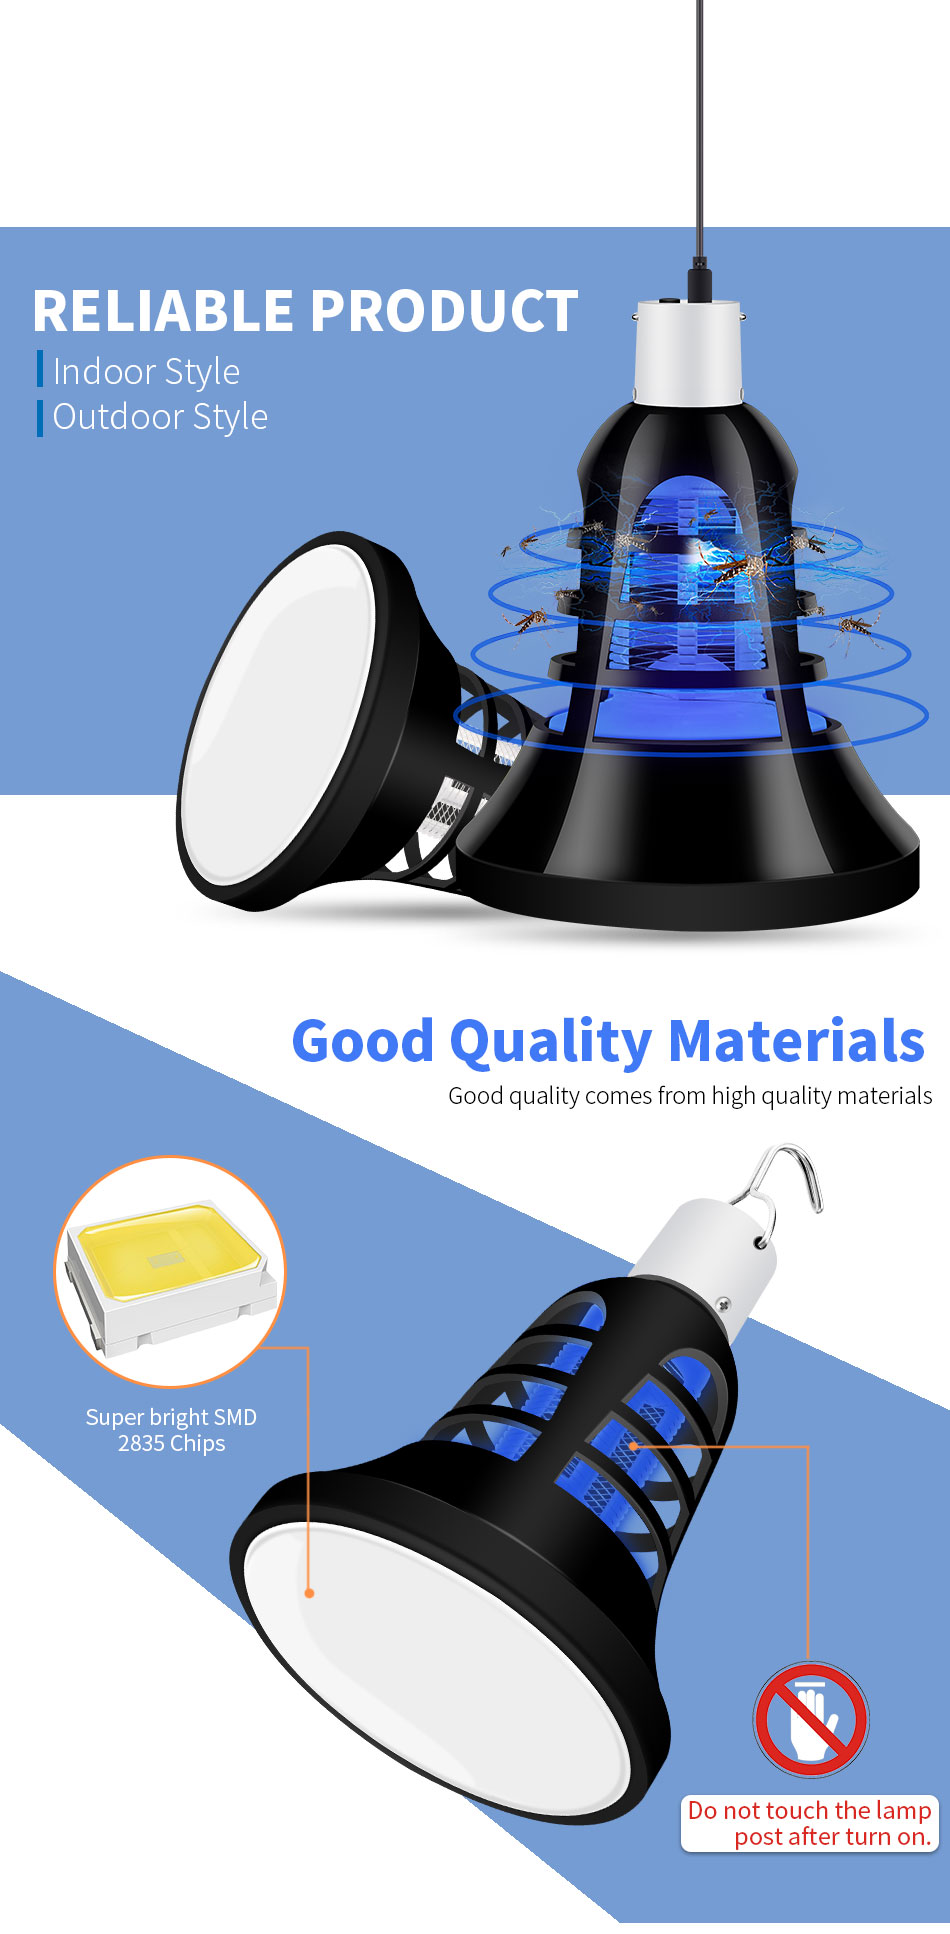 _01  CanLing E27 LED Bulb Electrical Lure Mosquito Killer Mild 220V Mosquito Killer Lamp 2 in 1 Digital Anti Insect Bug Night time Lamps HTB1i7LqfborBKNjSZFjq6A SpXaT